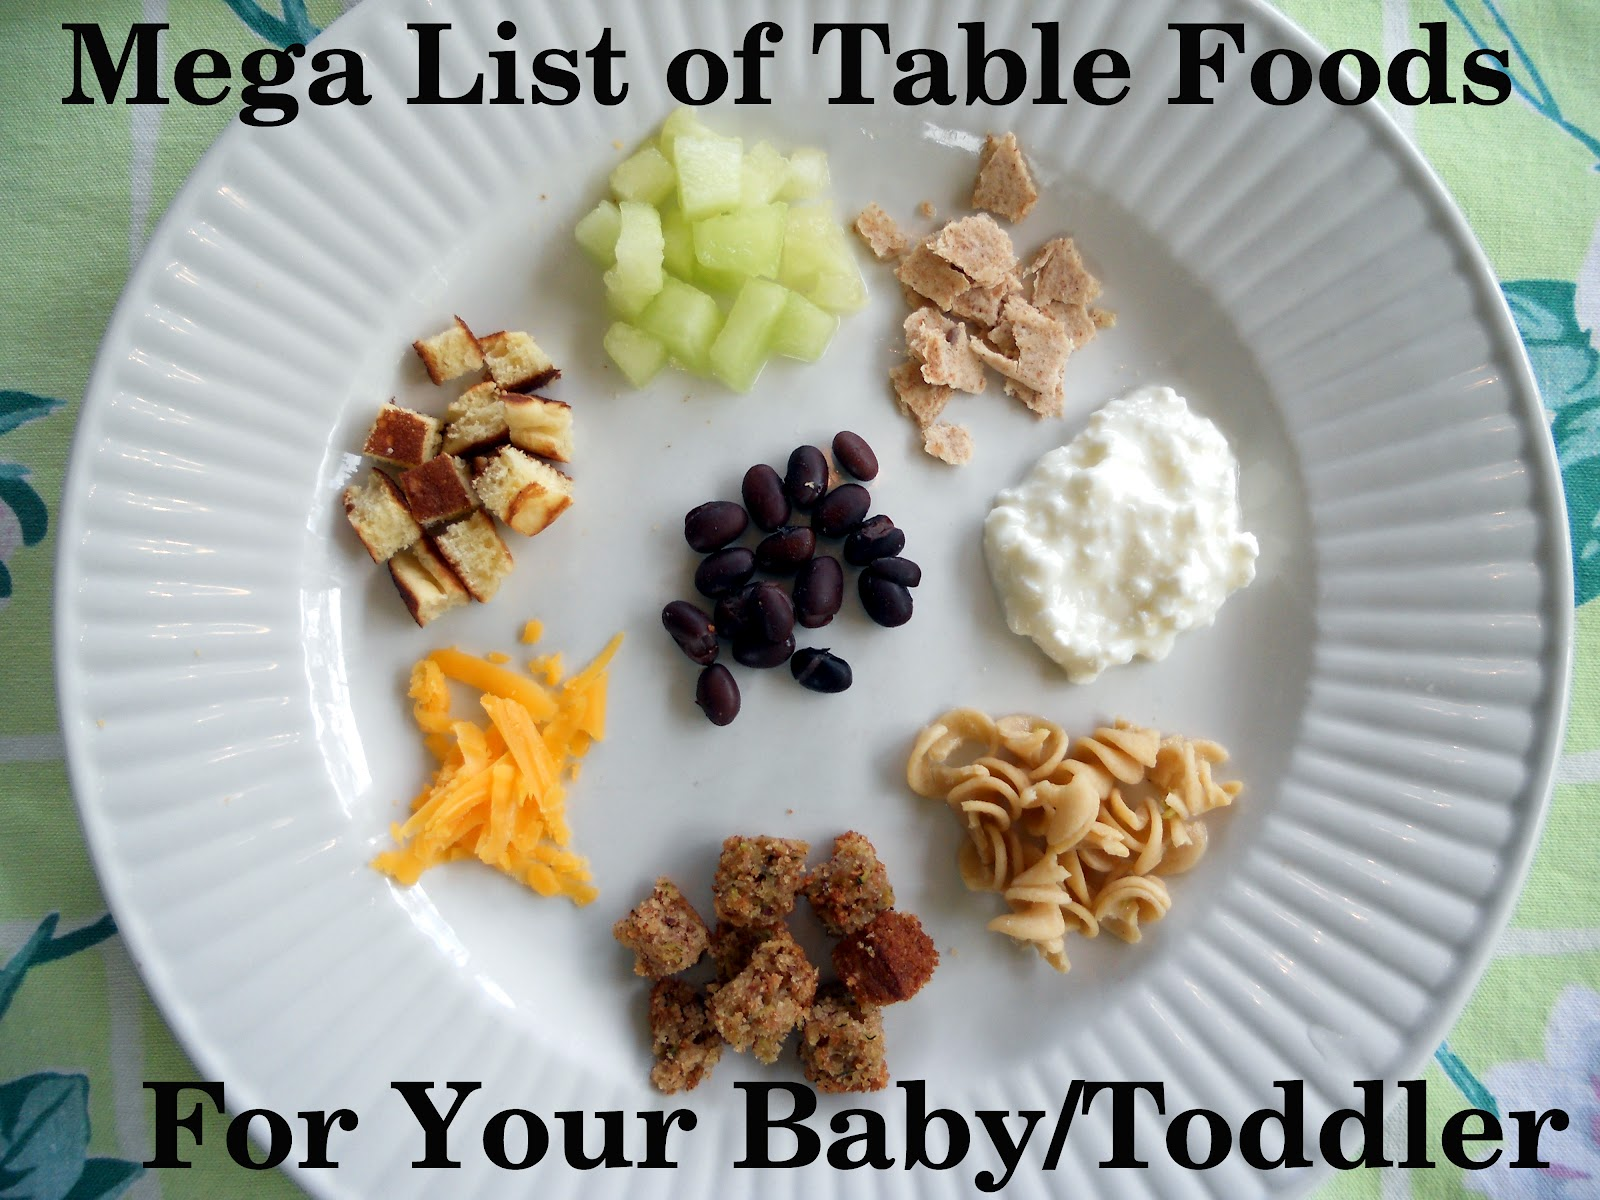 Mega List Of Table Foods For Your Baby Or Toddler Your